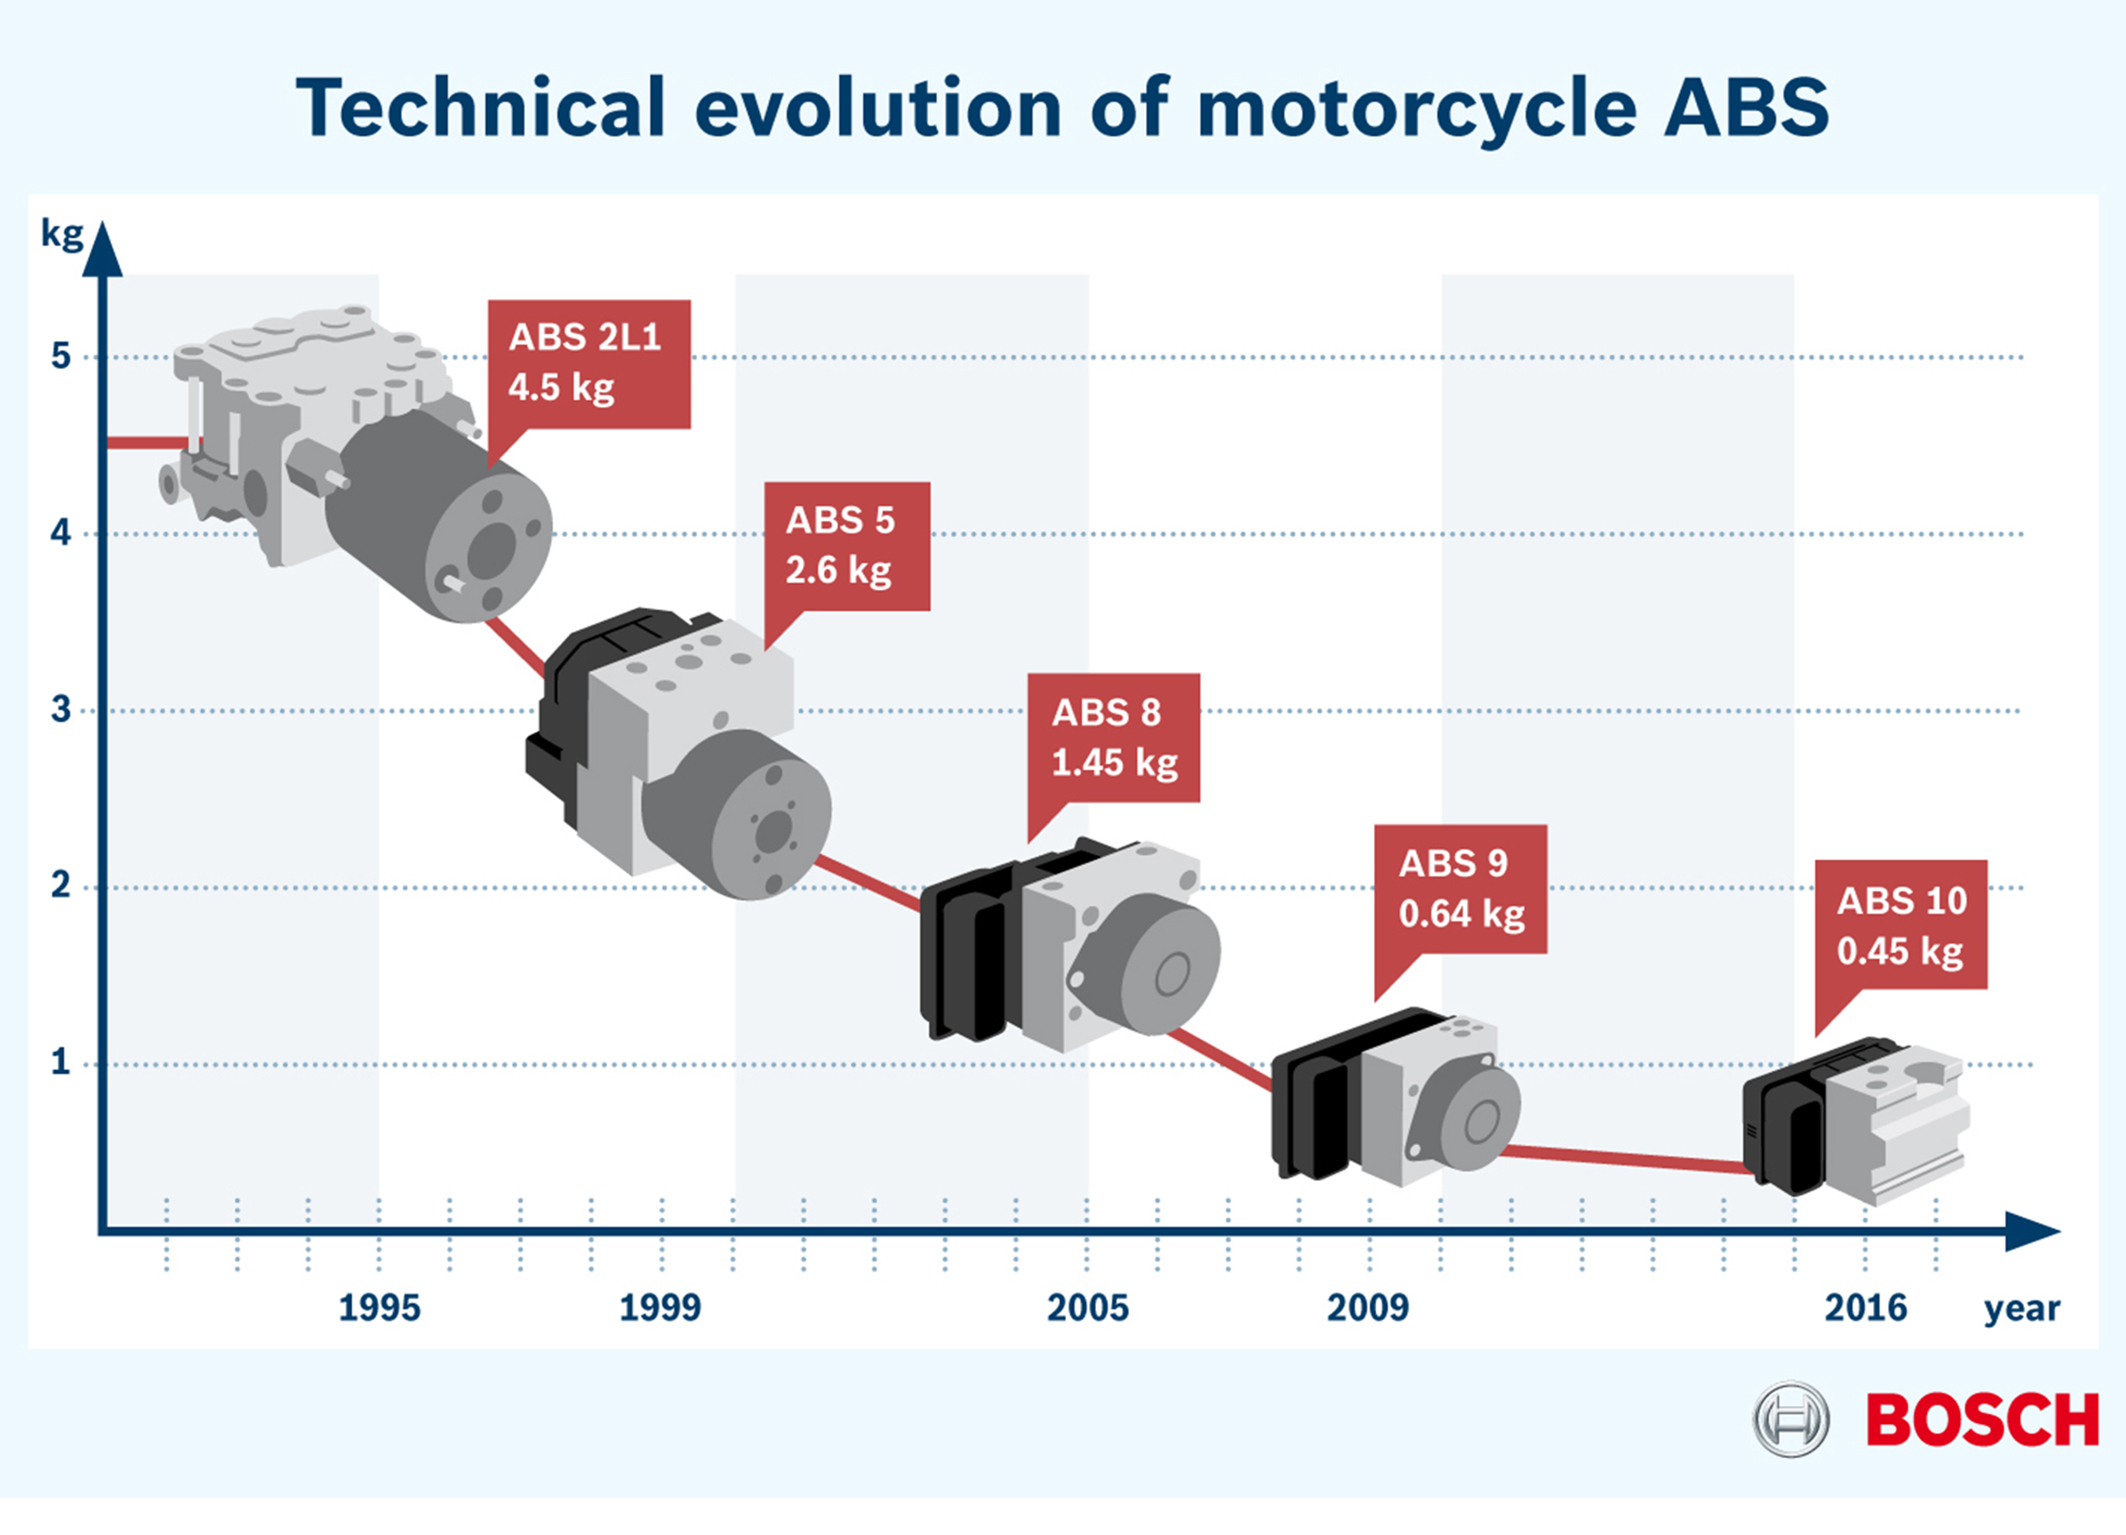 Bosch presents its new-generation motorcycle ABS